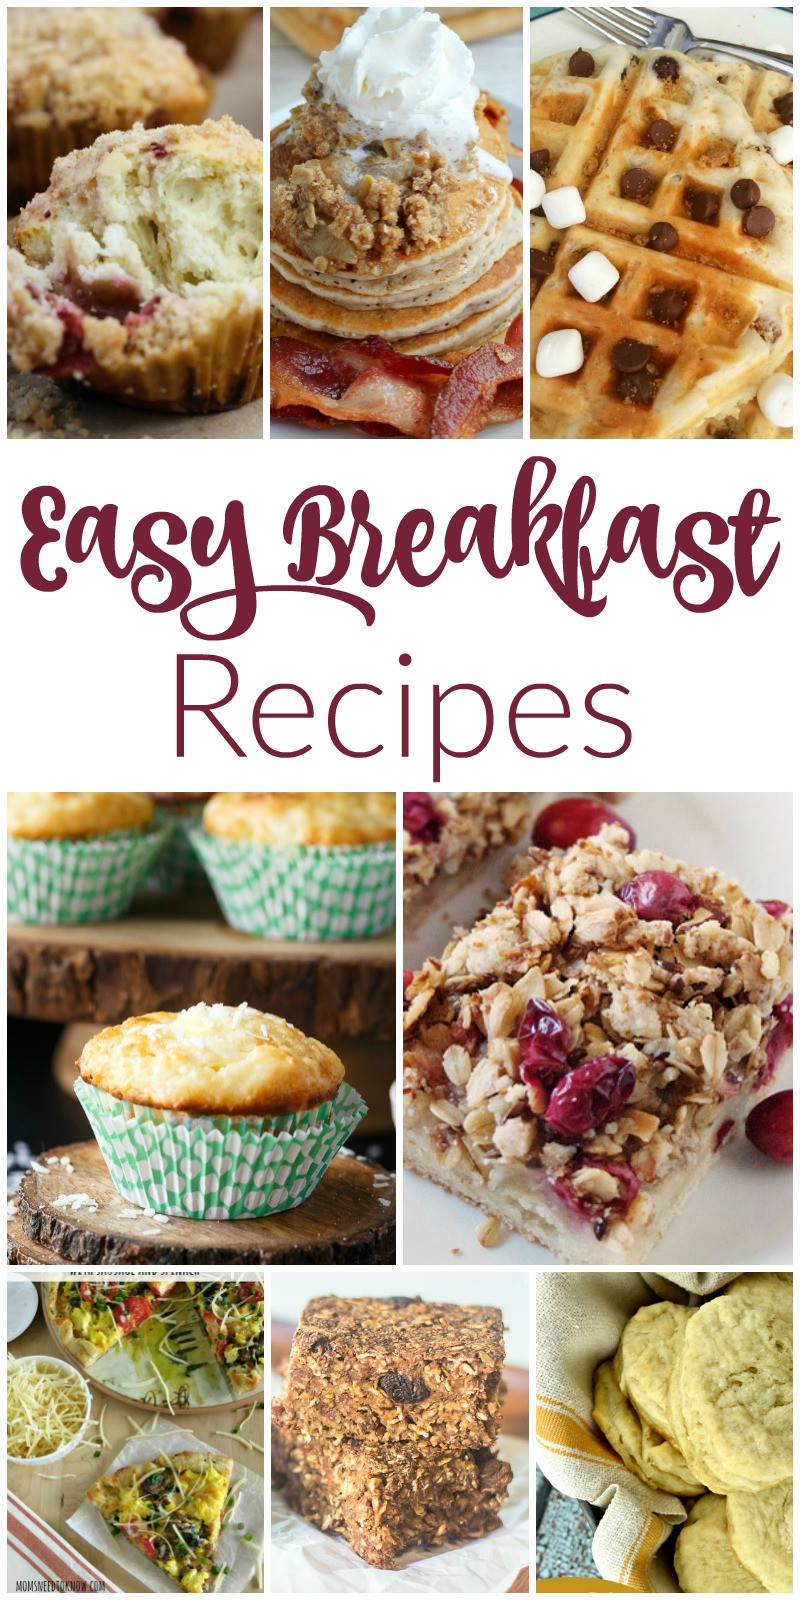 Yummy Breakfast Recipes  Easy Breakfast Recipes and our Delicious Dishes Recipe Party